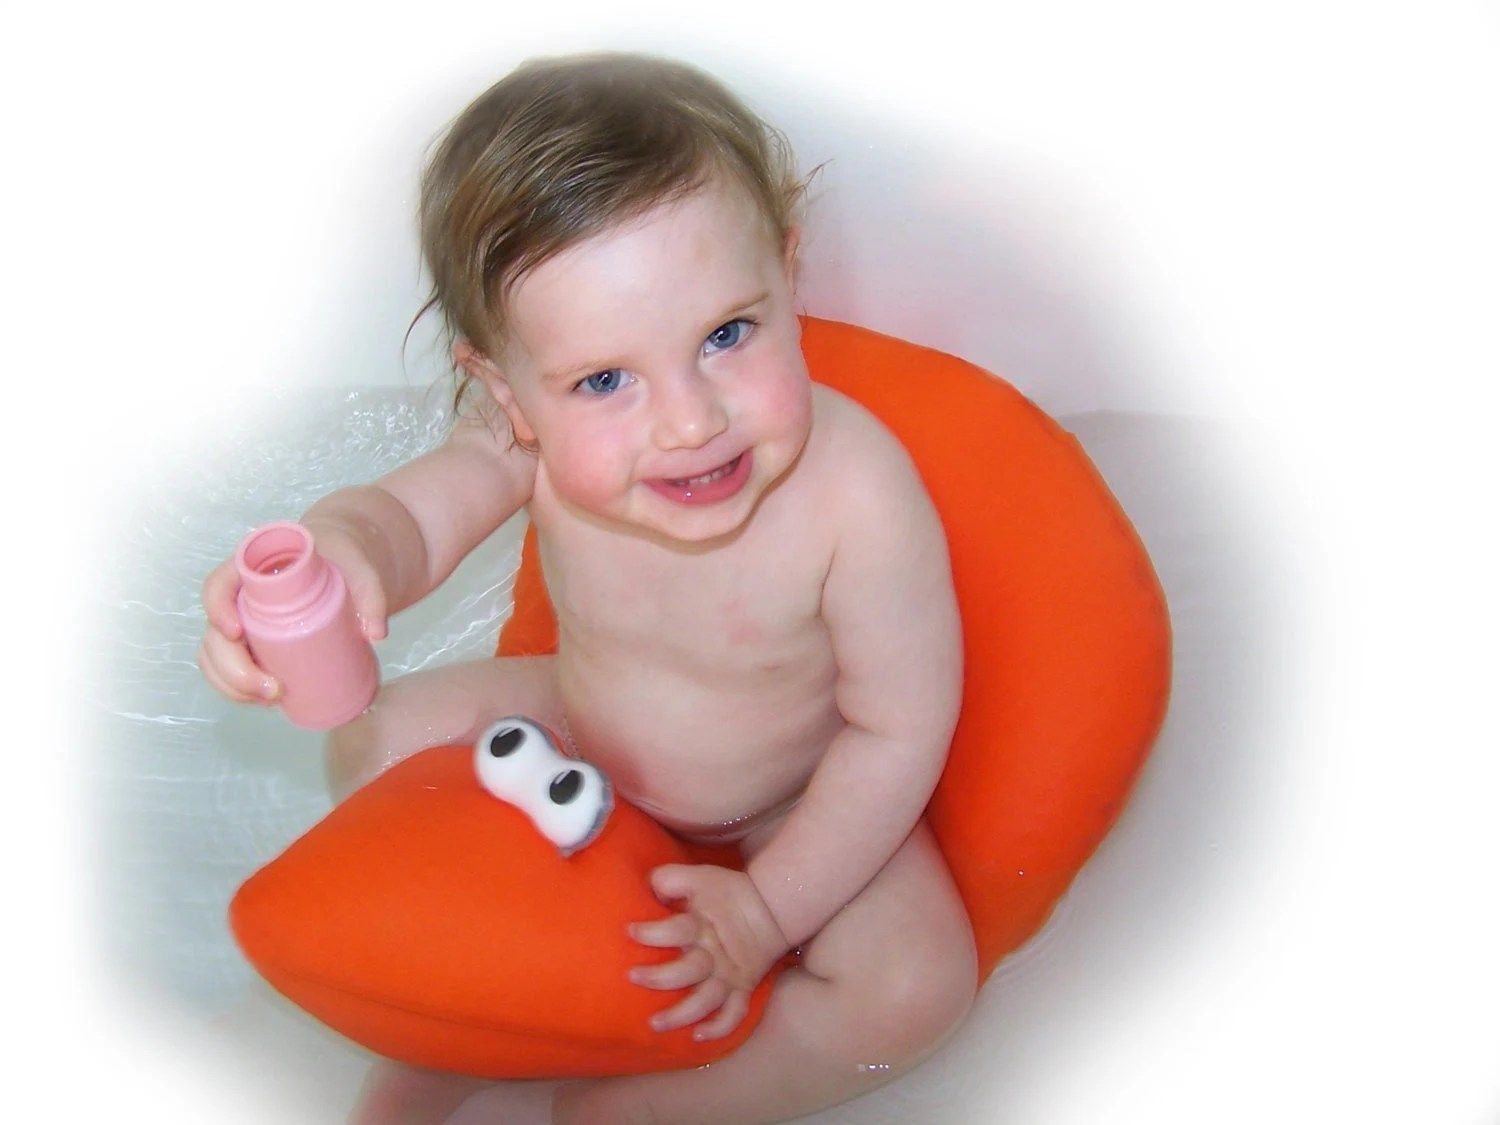 baby bath chairs urinal potty chair shibaba seat ring tub seats babies safety